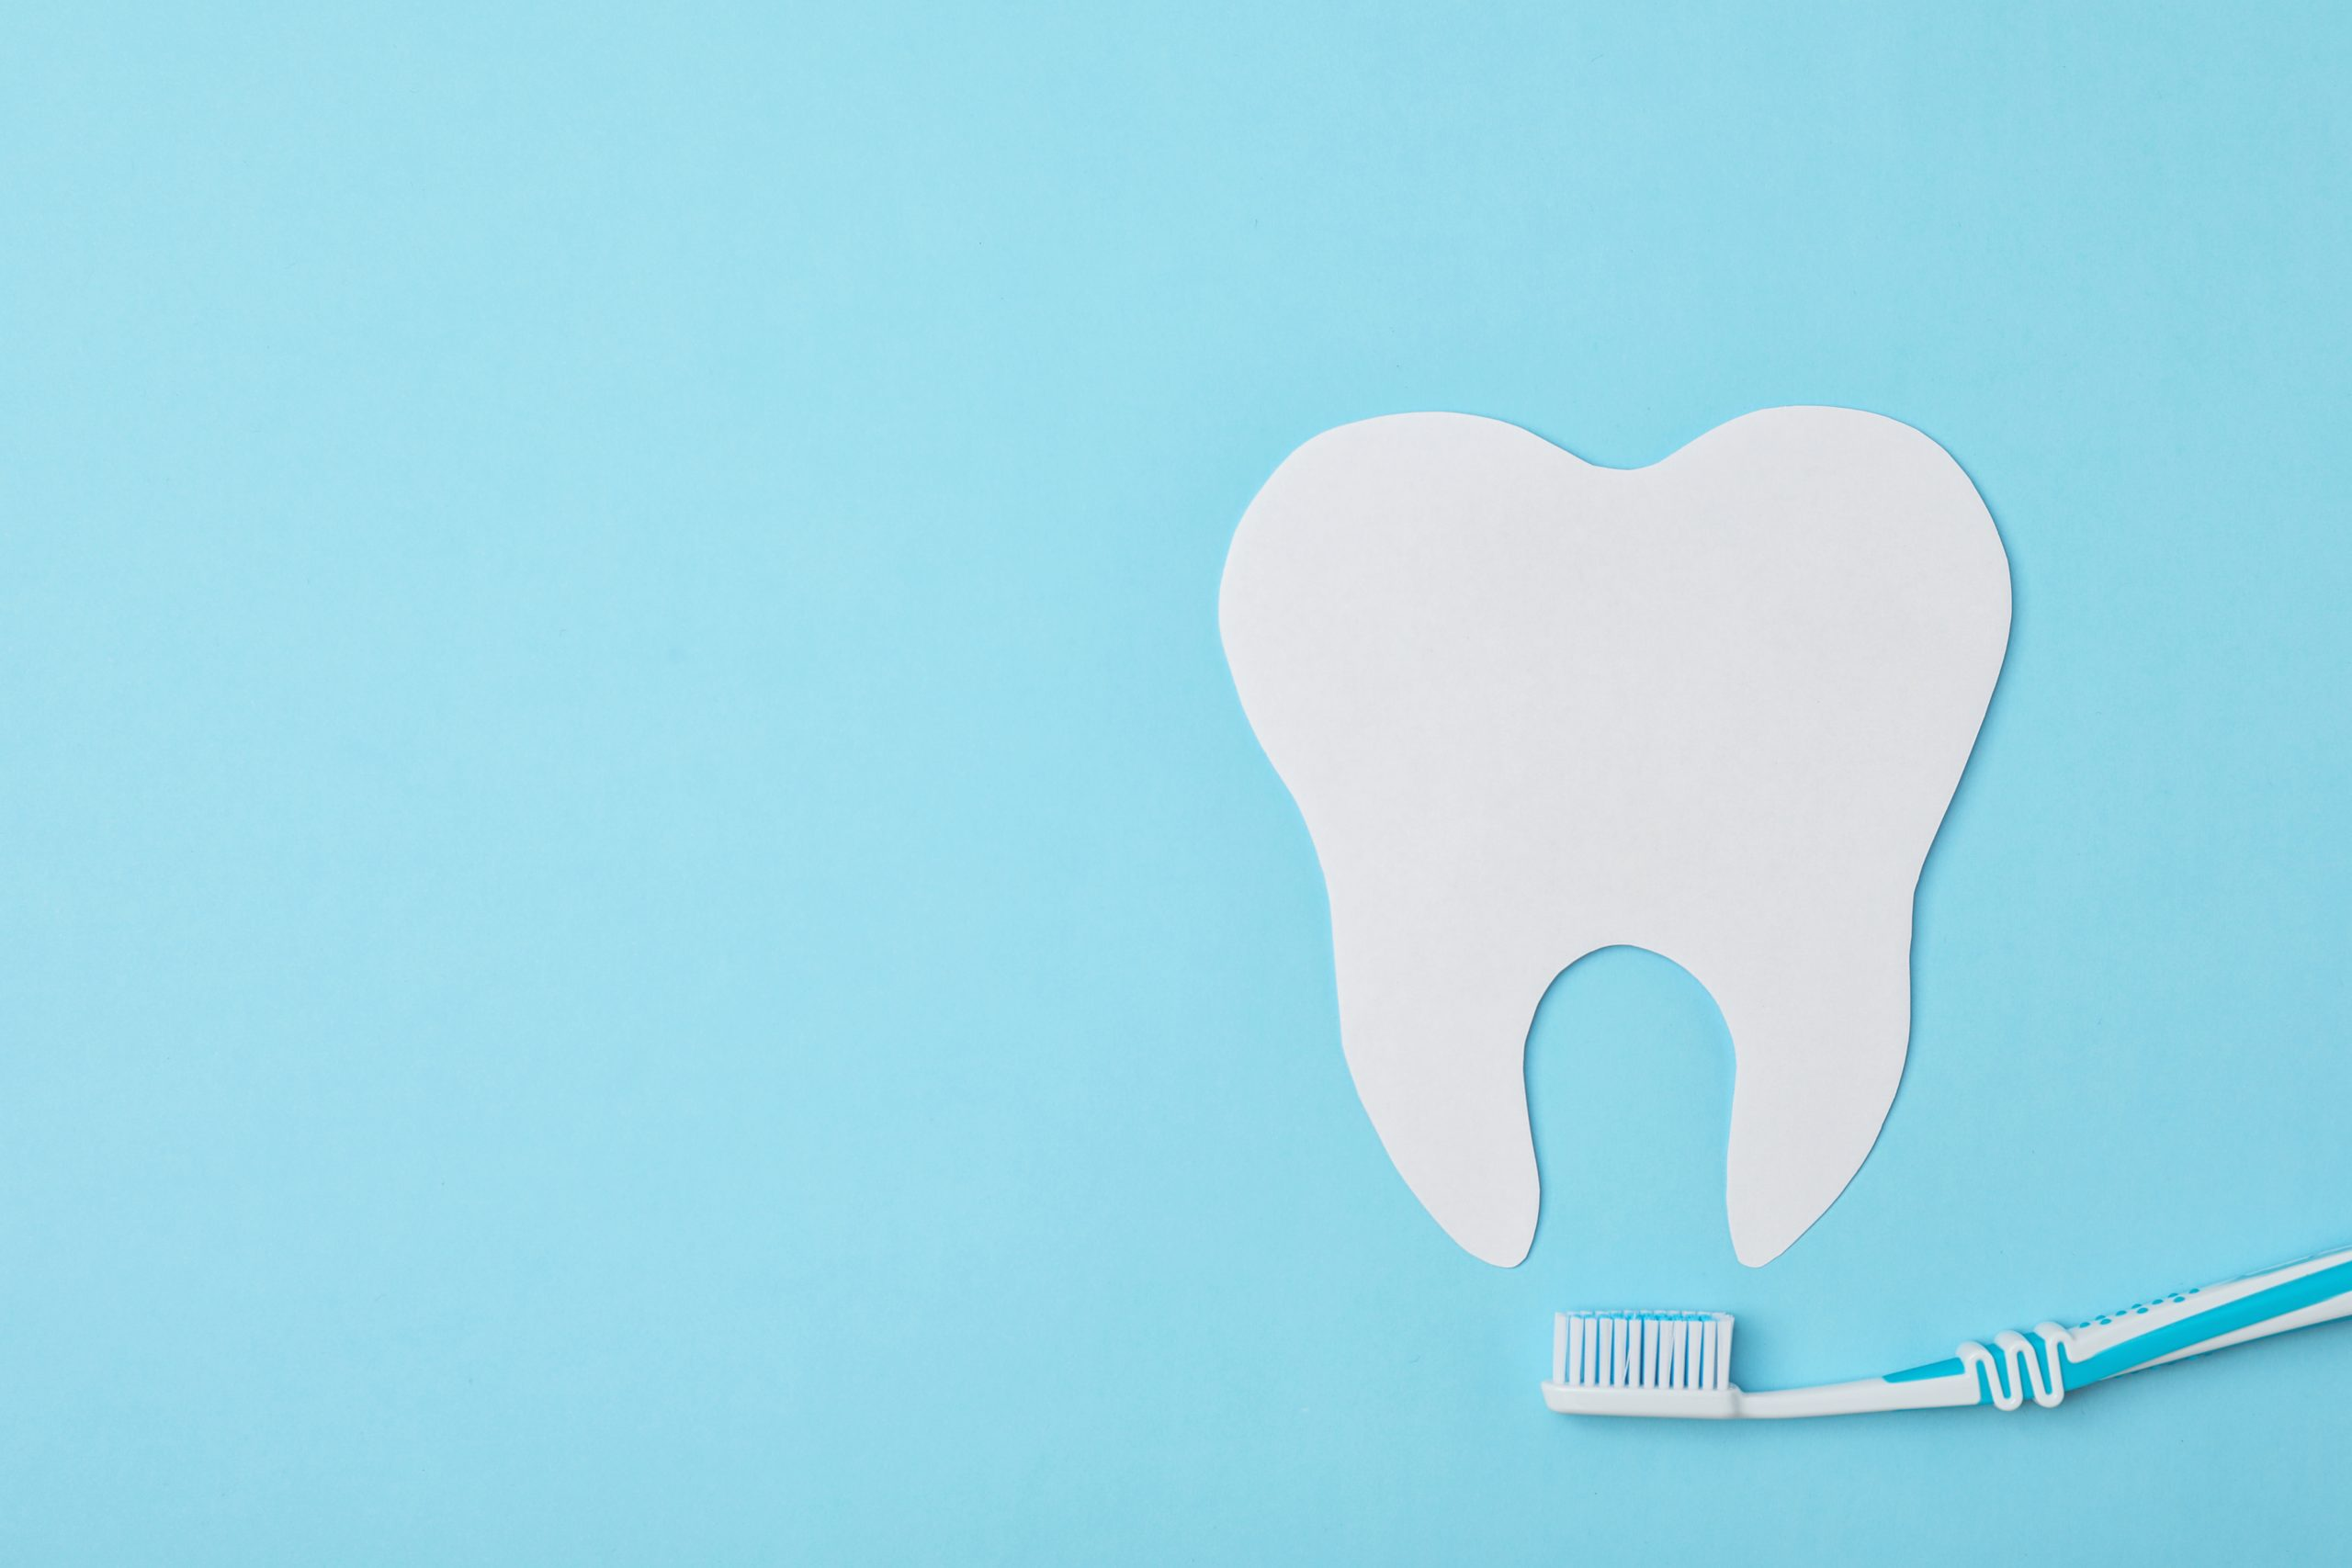 Paper tooth cutout and brush on color background, flat lay with space for text. Professional dentist